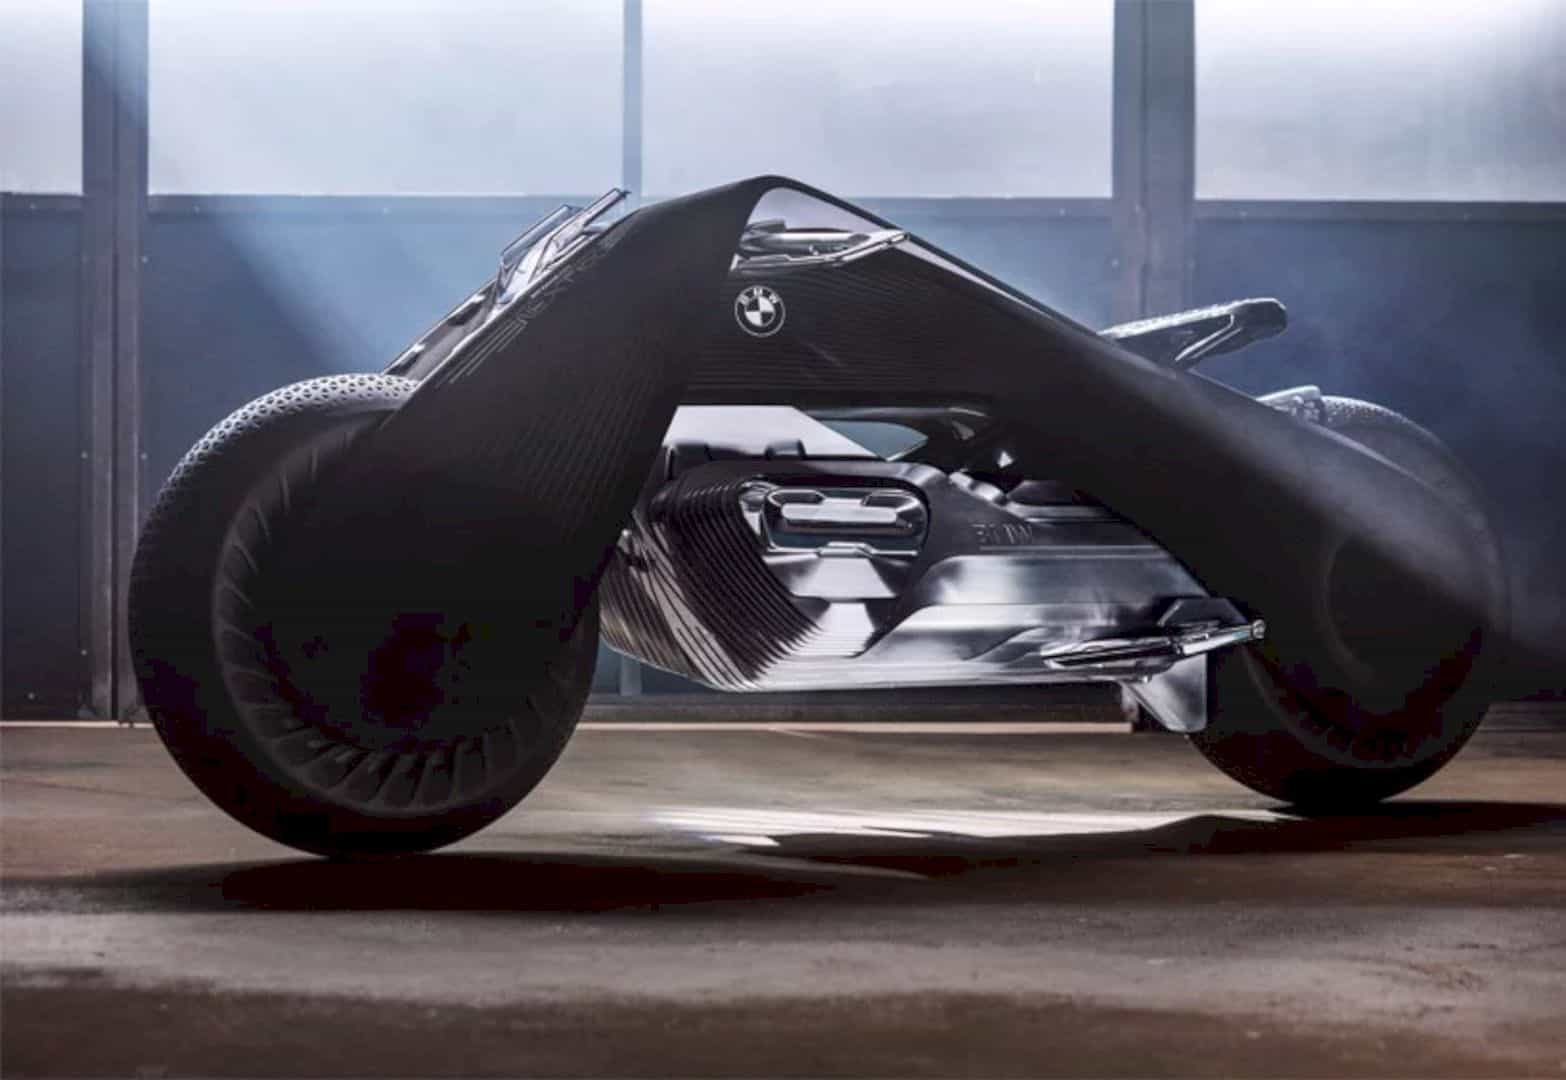 The BMW Vision Next 100 Concept Motorcycle: The Real Deal in Futuristic Bike!